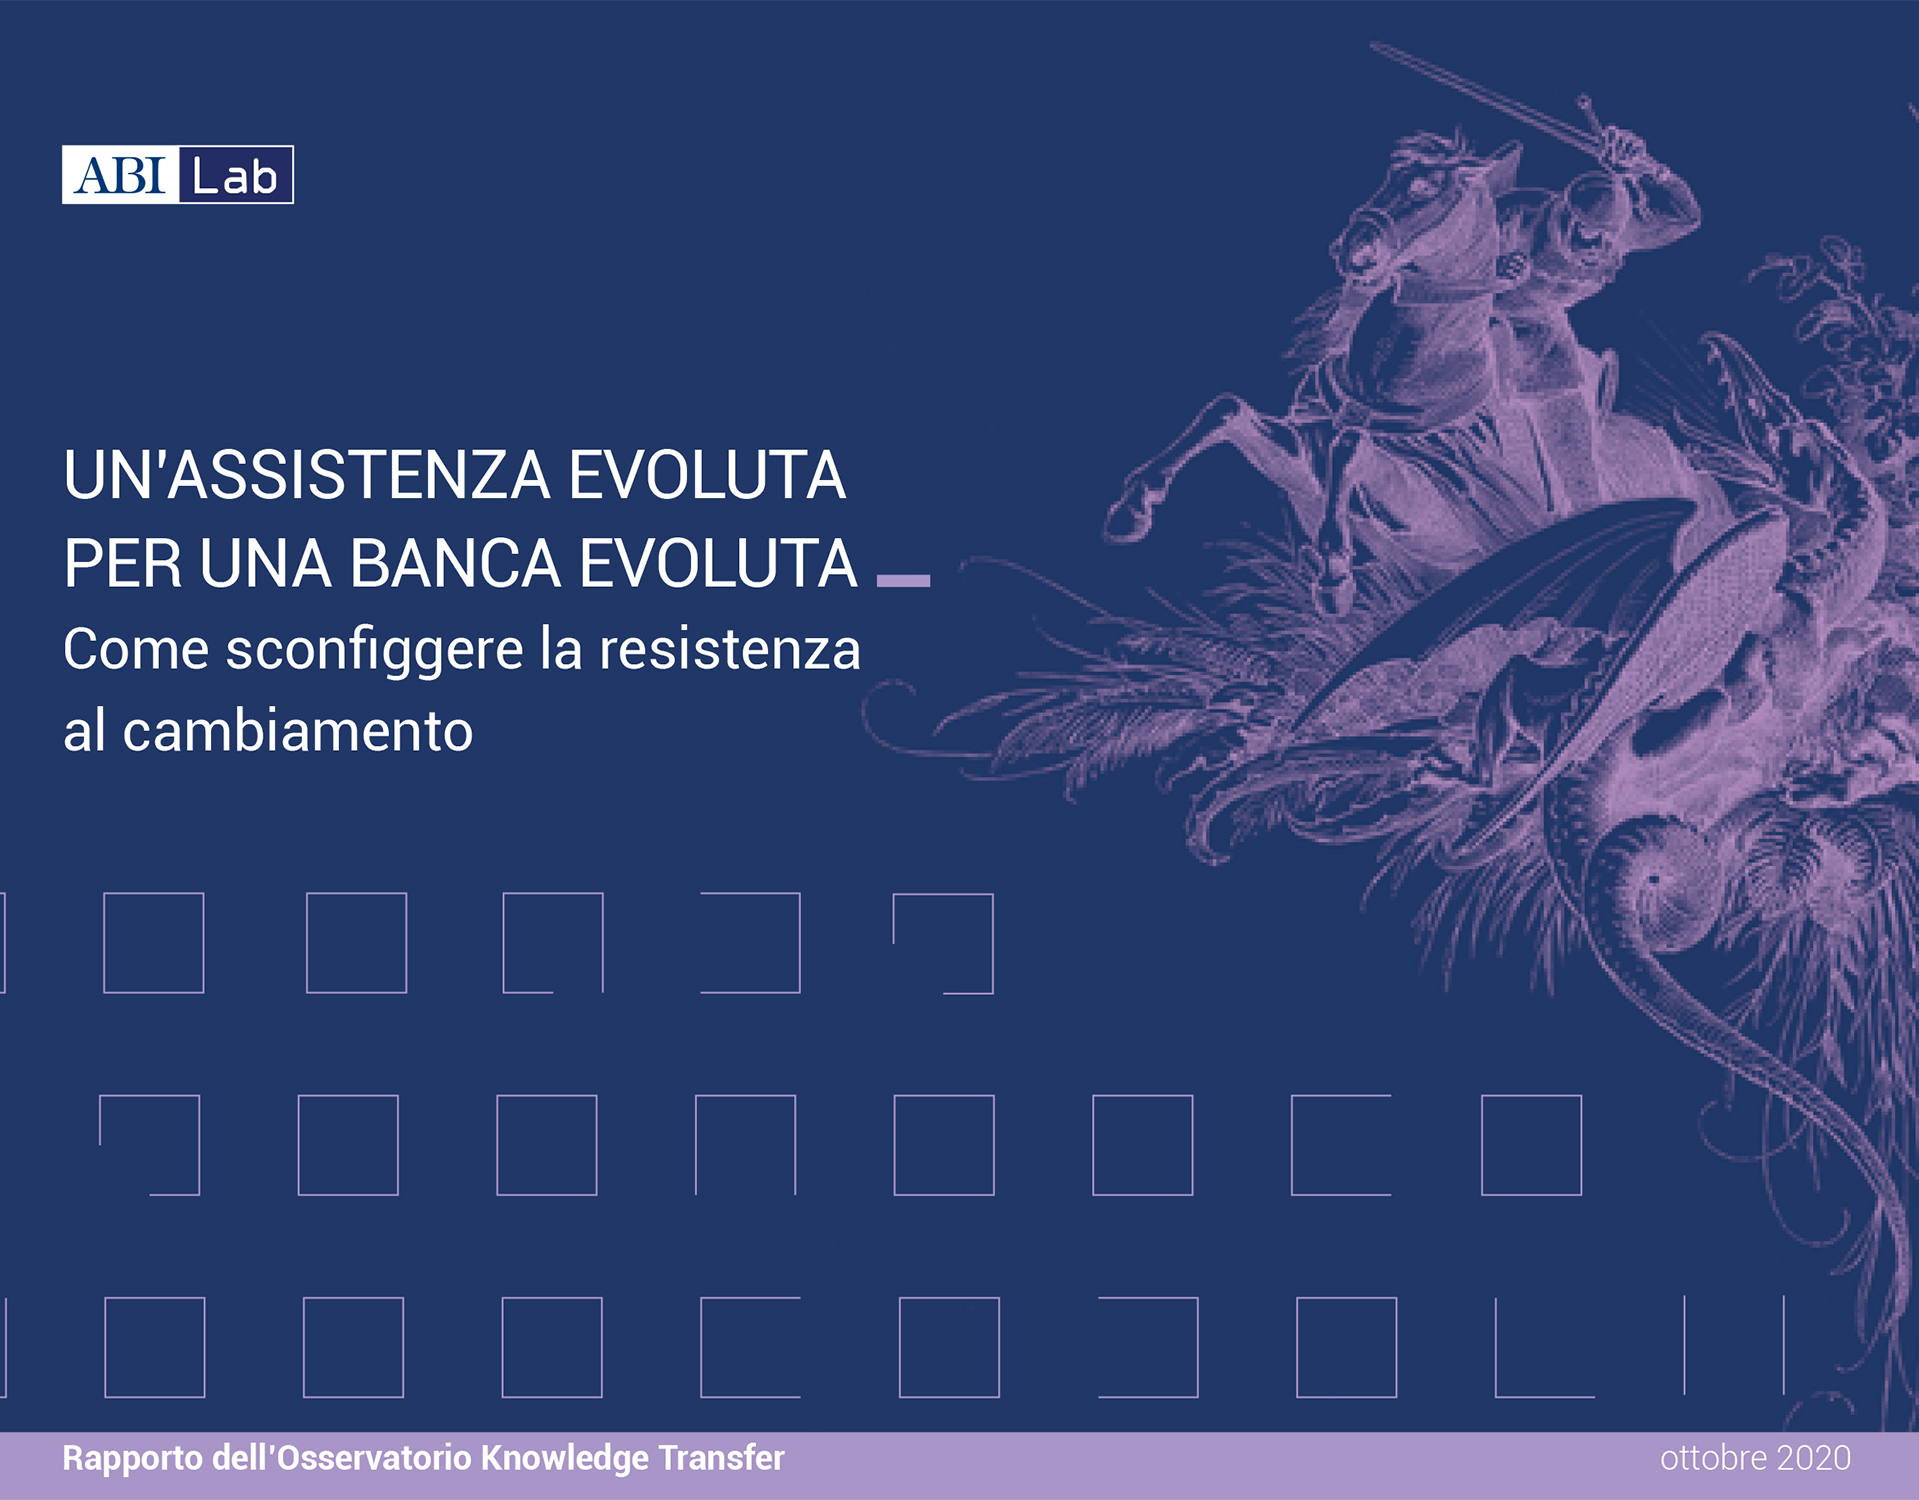 Rapporto Knowledge Transfer 2020 - Un'assistenza evoluta per una banca evoluta